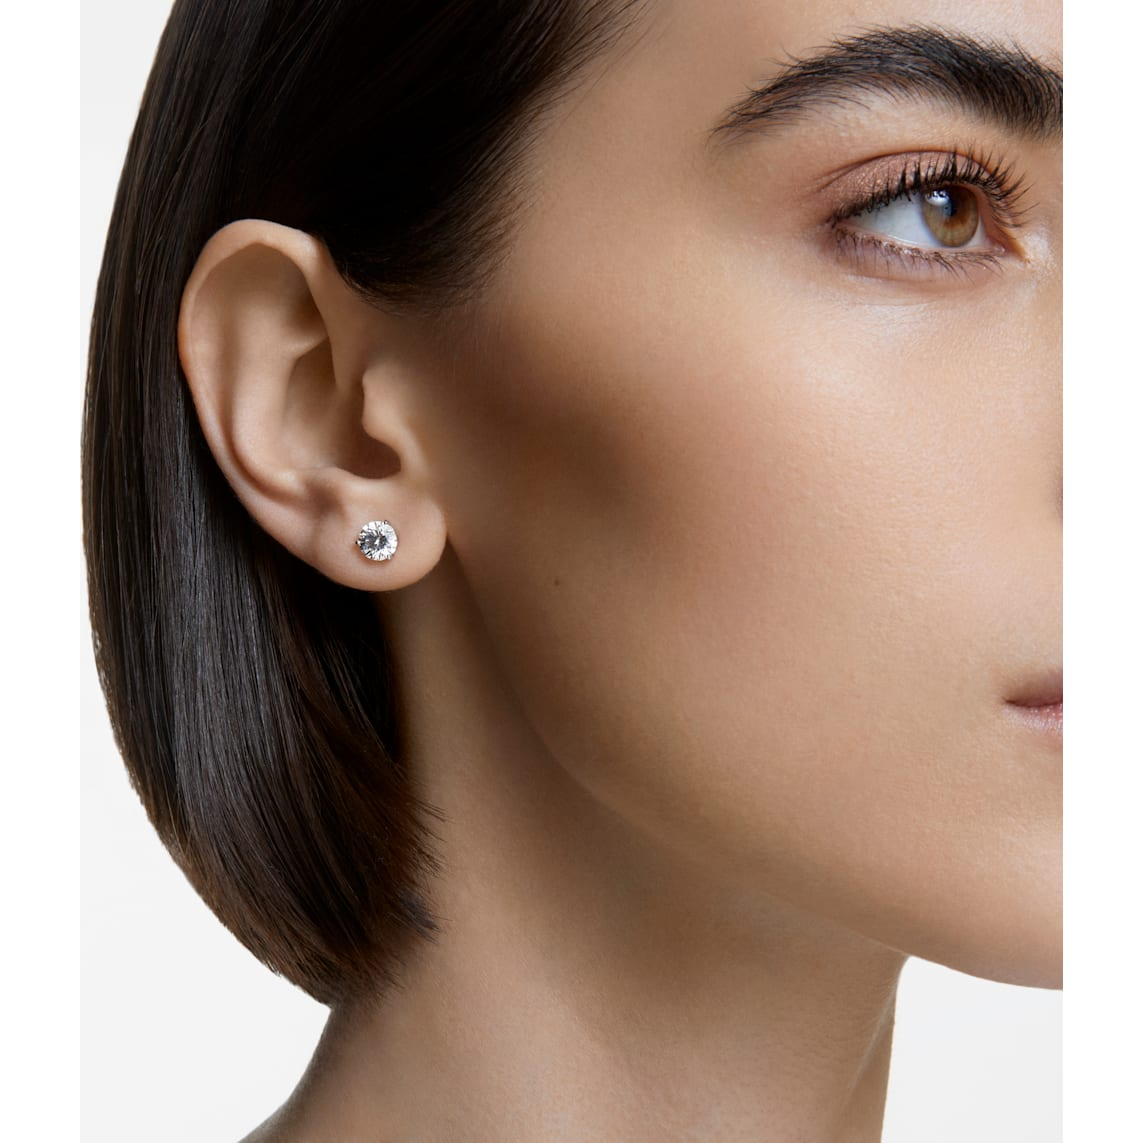 Solitaire Pierced Earrings White Rhodium Plated